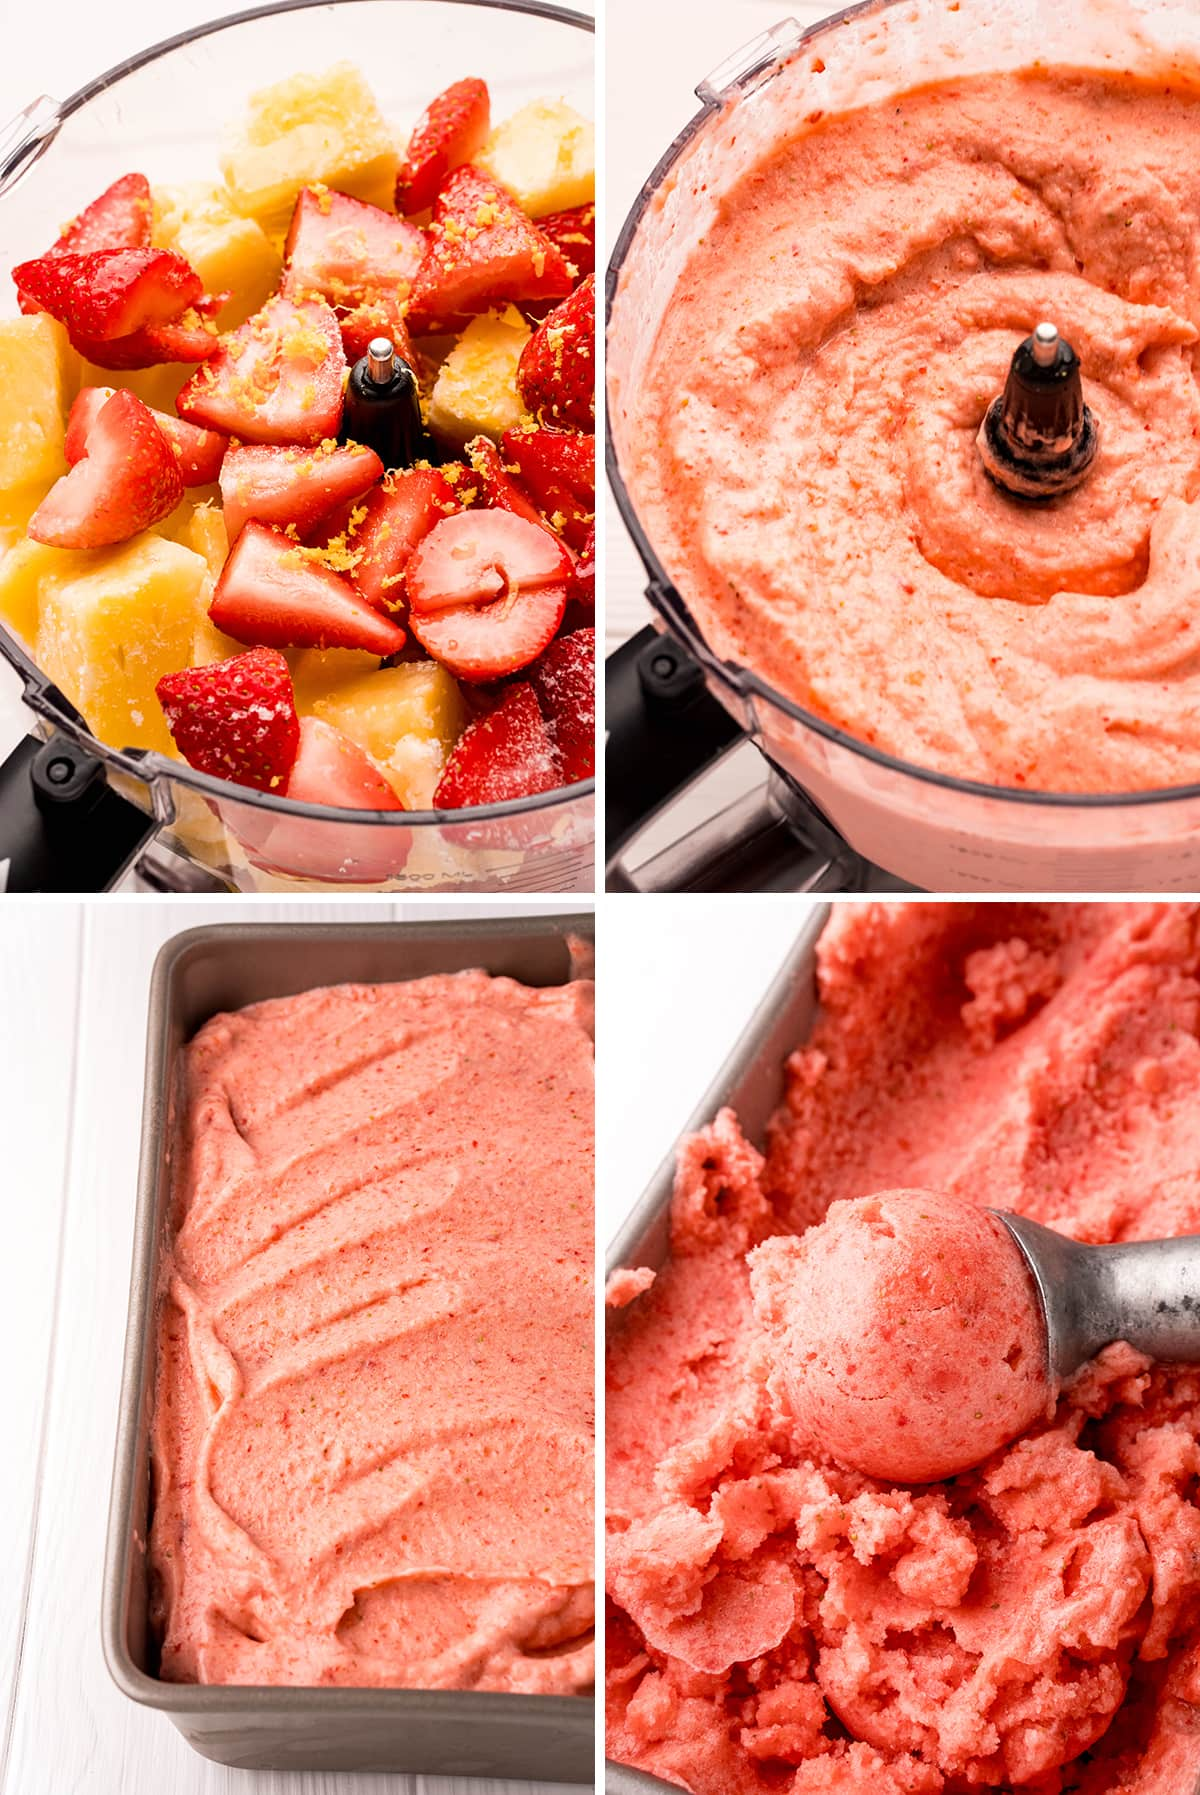 Step by step photos showing how to make strawberry sorbet in a food processor. The frozen strawberries and pineapple are blended together, then put in a pan, and frozen, then scoop.